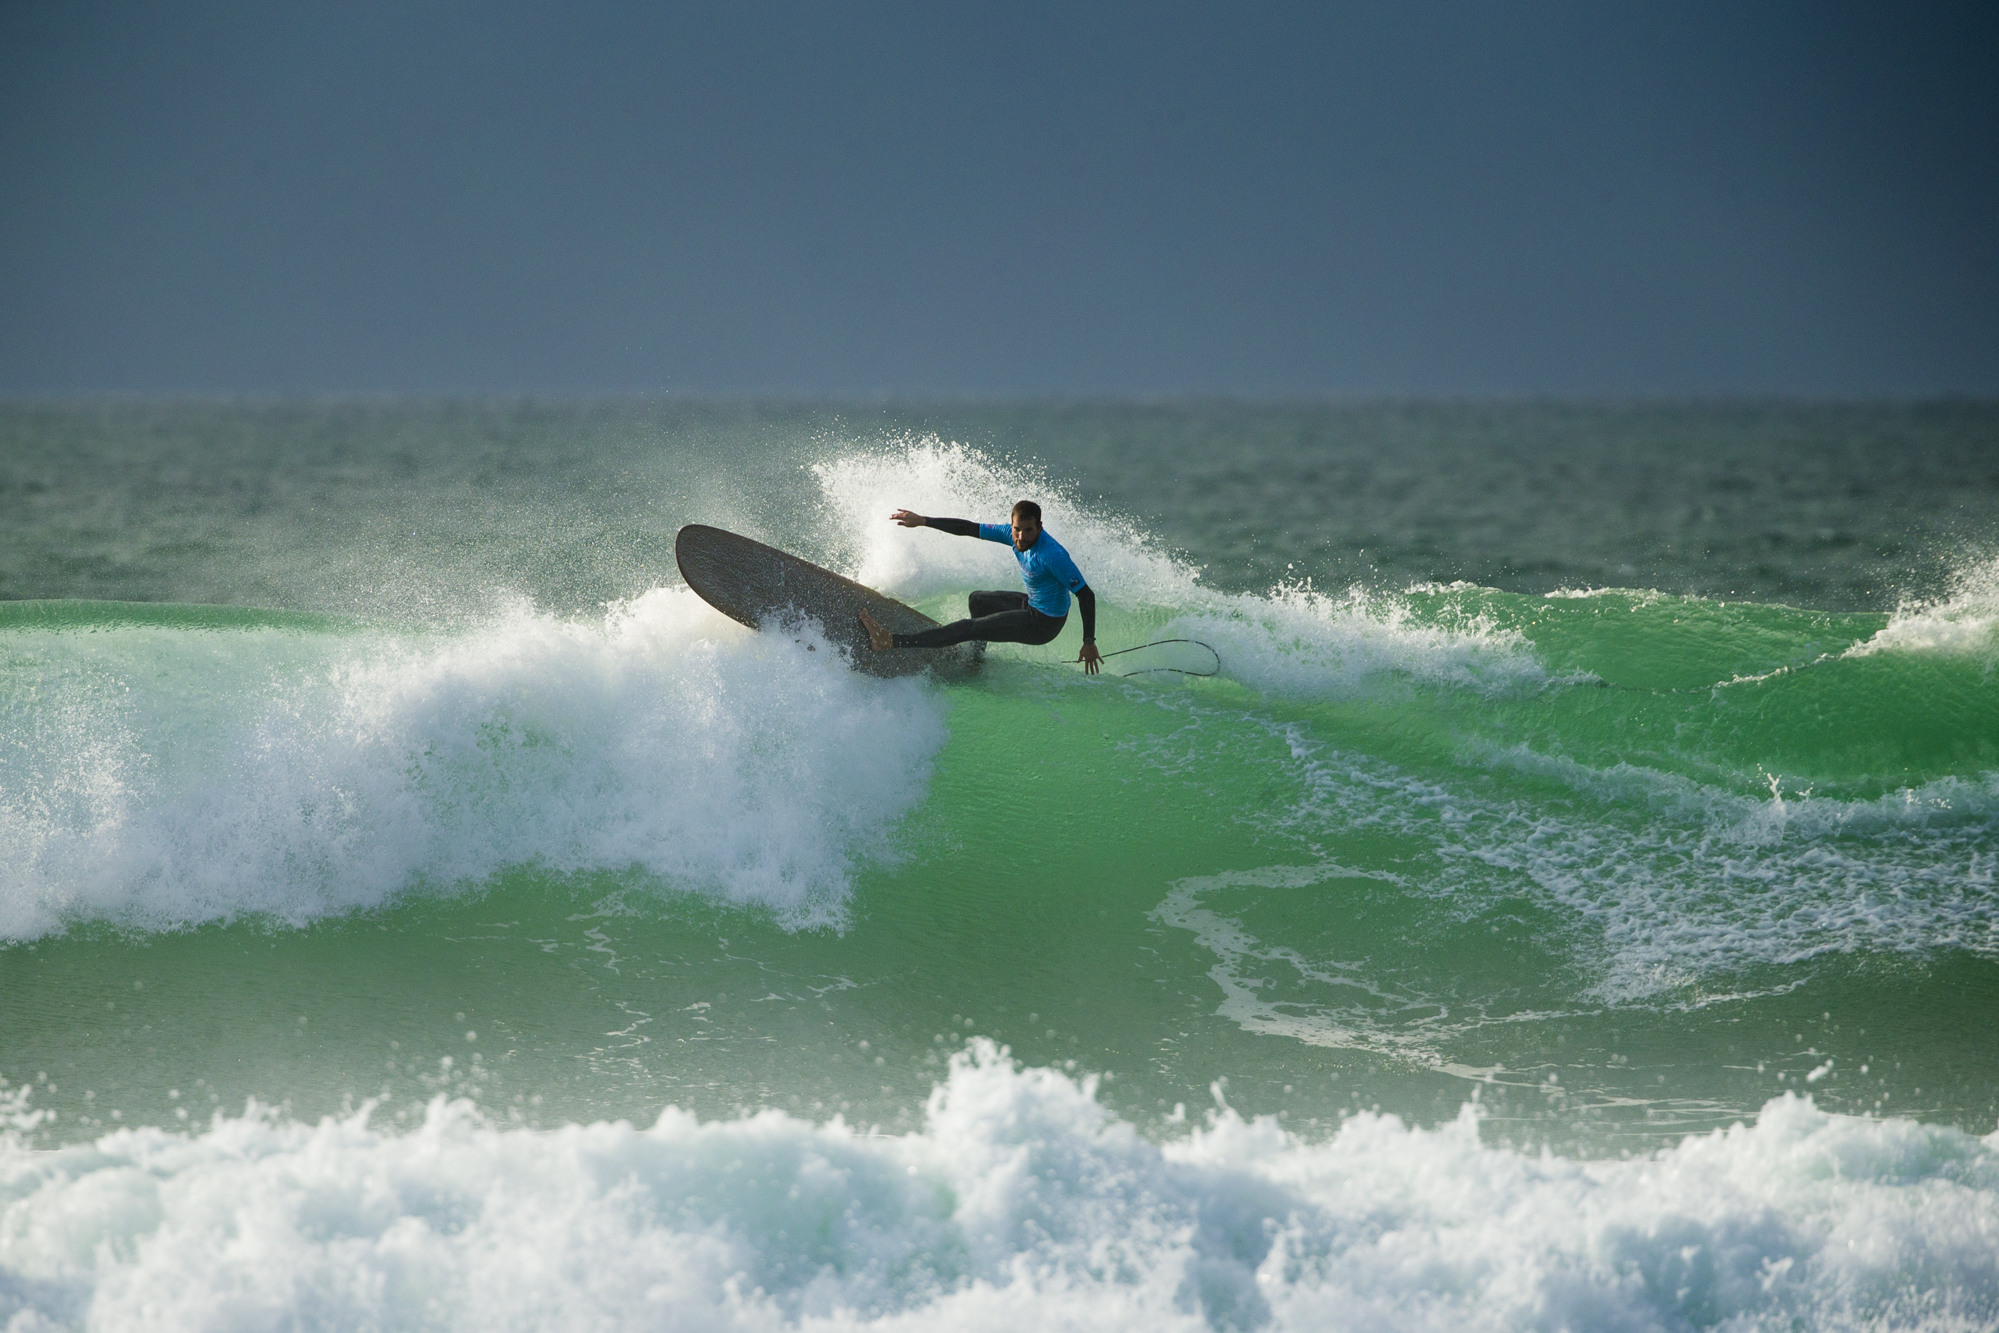 french-surfing-championships-2017-hossegor-we-creative-guillaume-arrieta